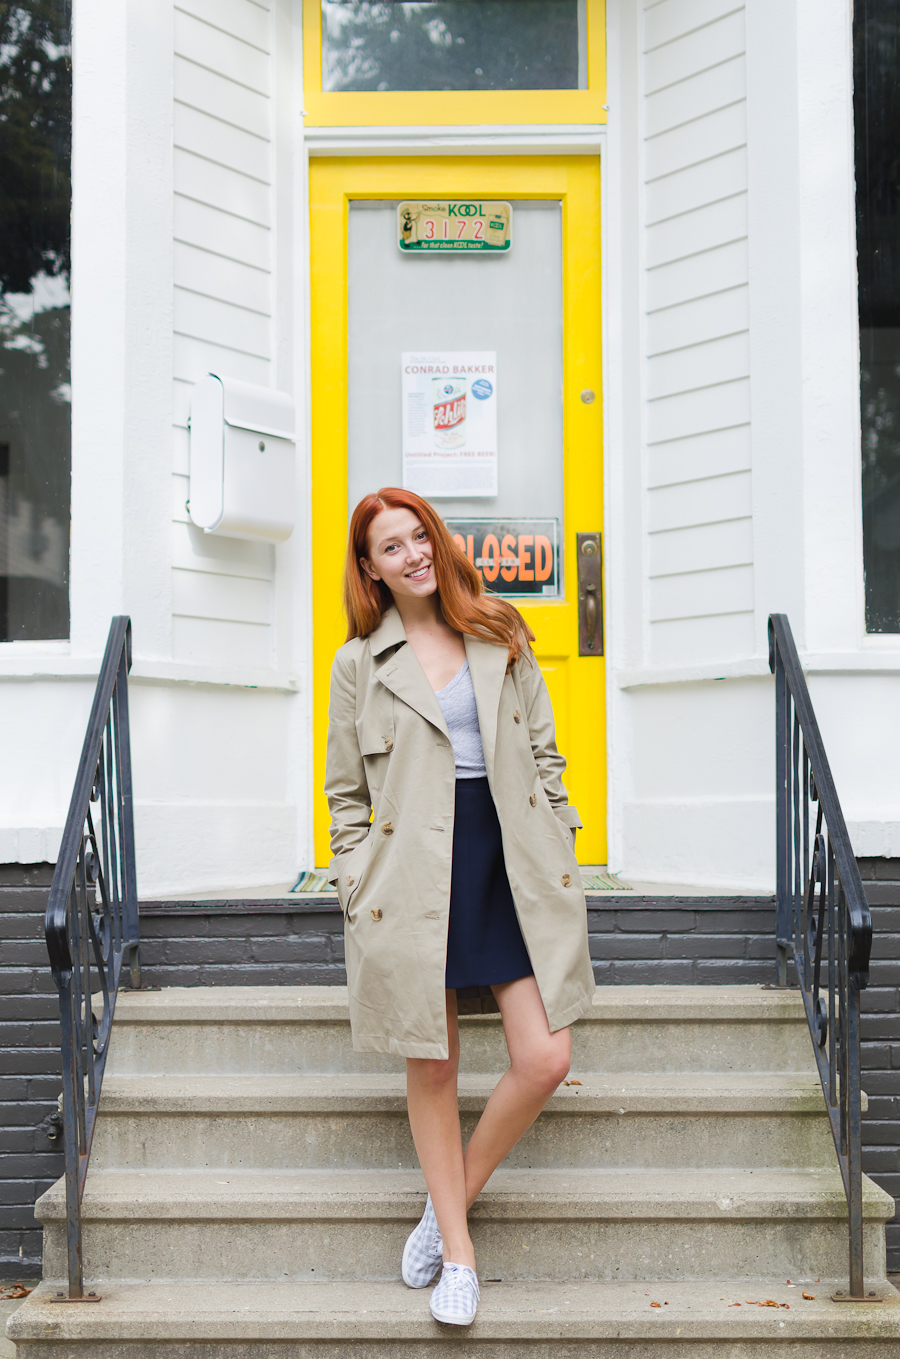 Beautyosaurus Lex-autumn-fall-ootd-outfit-style-keds-gingham-gap-trench coat-classic trench coat-j.crew flare skirt-grey v neck tee-t shirt-red head-milwaukee